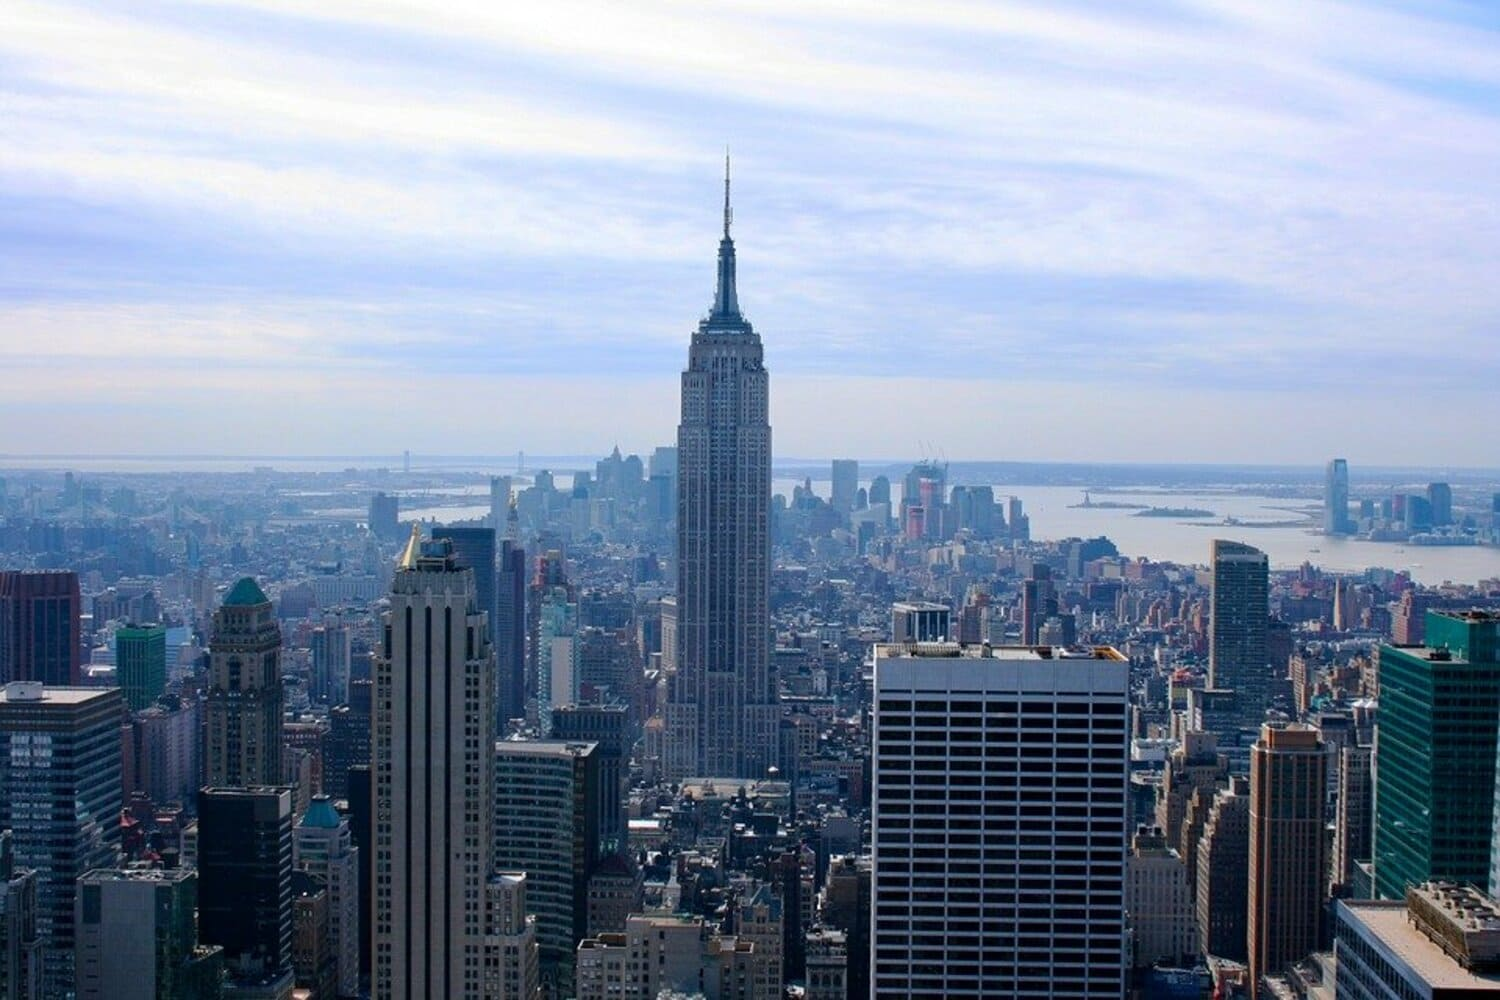 Sightseeing Pass Nueva York ofrece estas vistas del Empire State